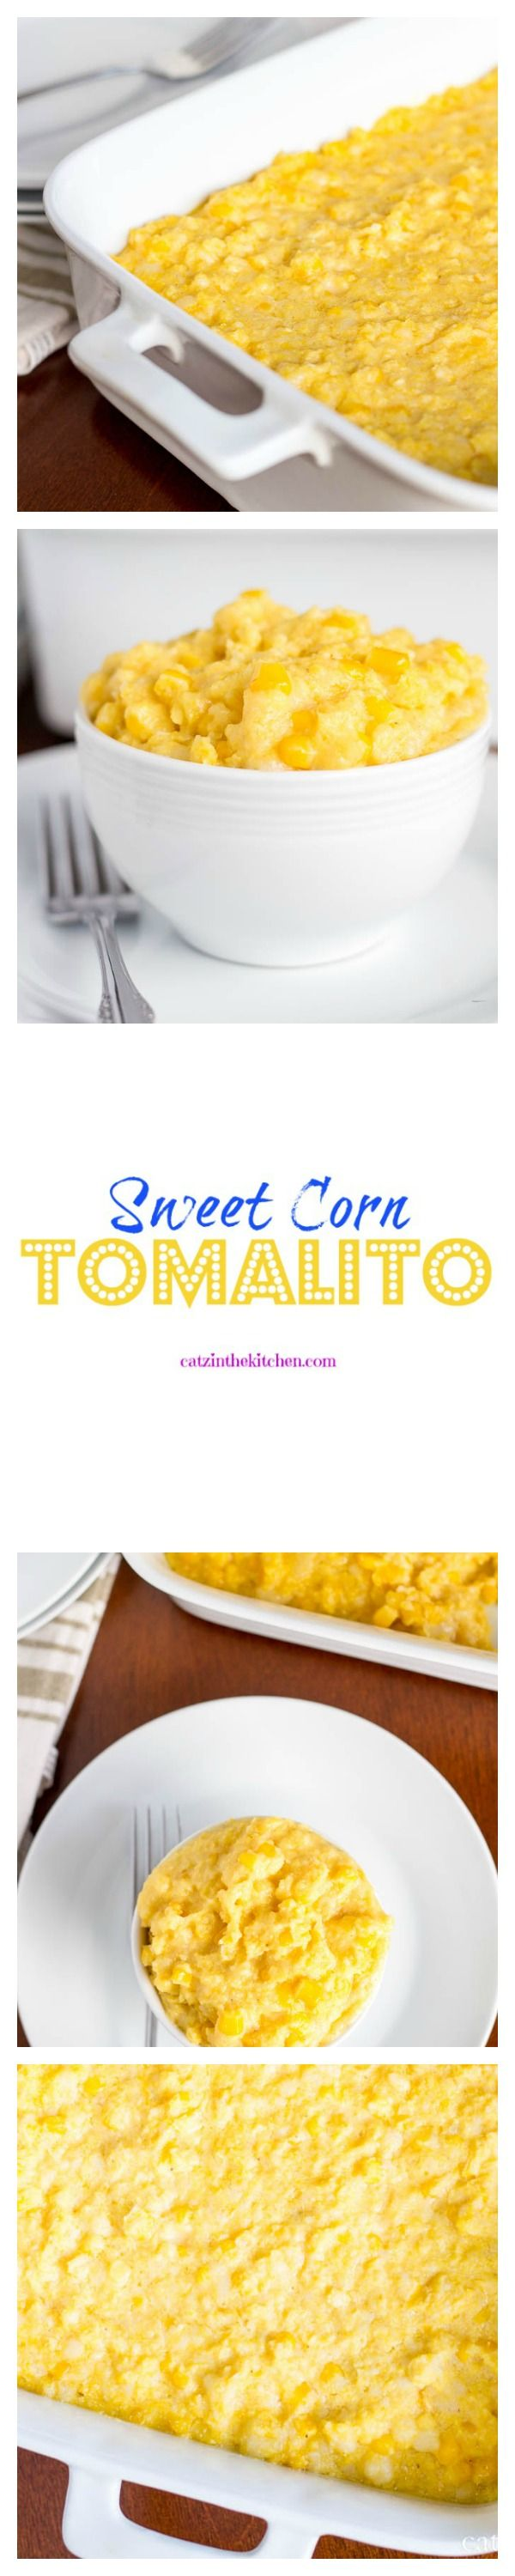 Chevy's Sweet Corn Tomalito. The perfect side dish for your taco nights. -Catzinthekitchen.com